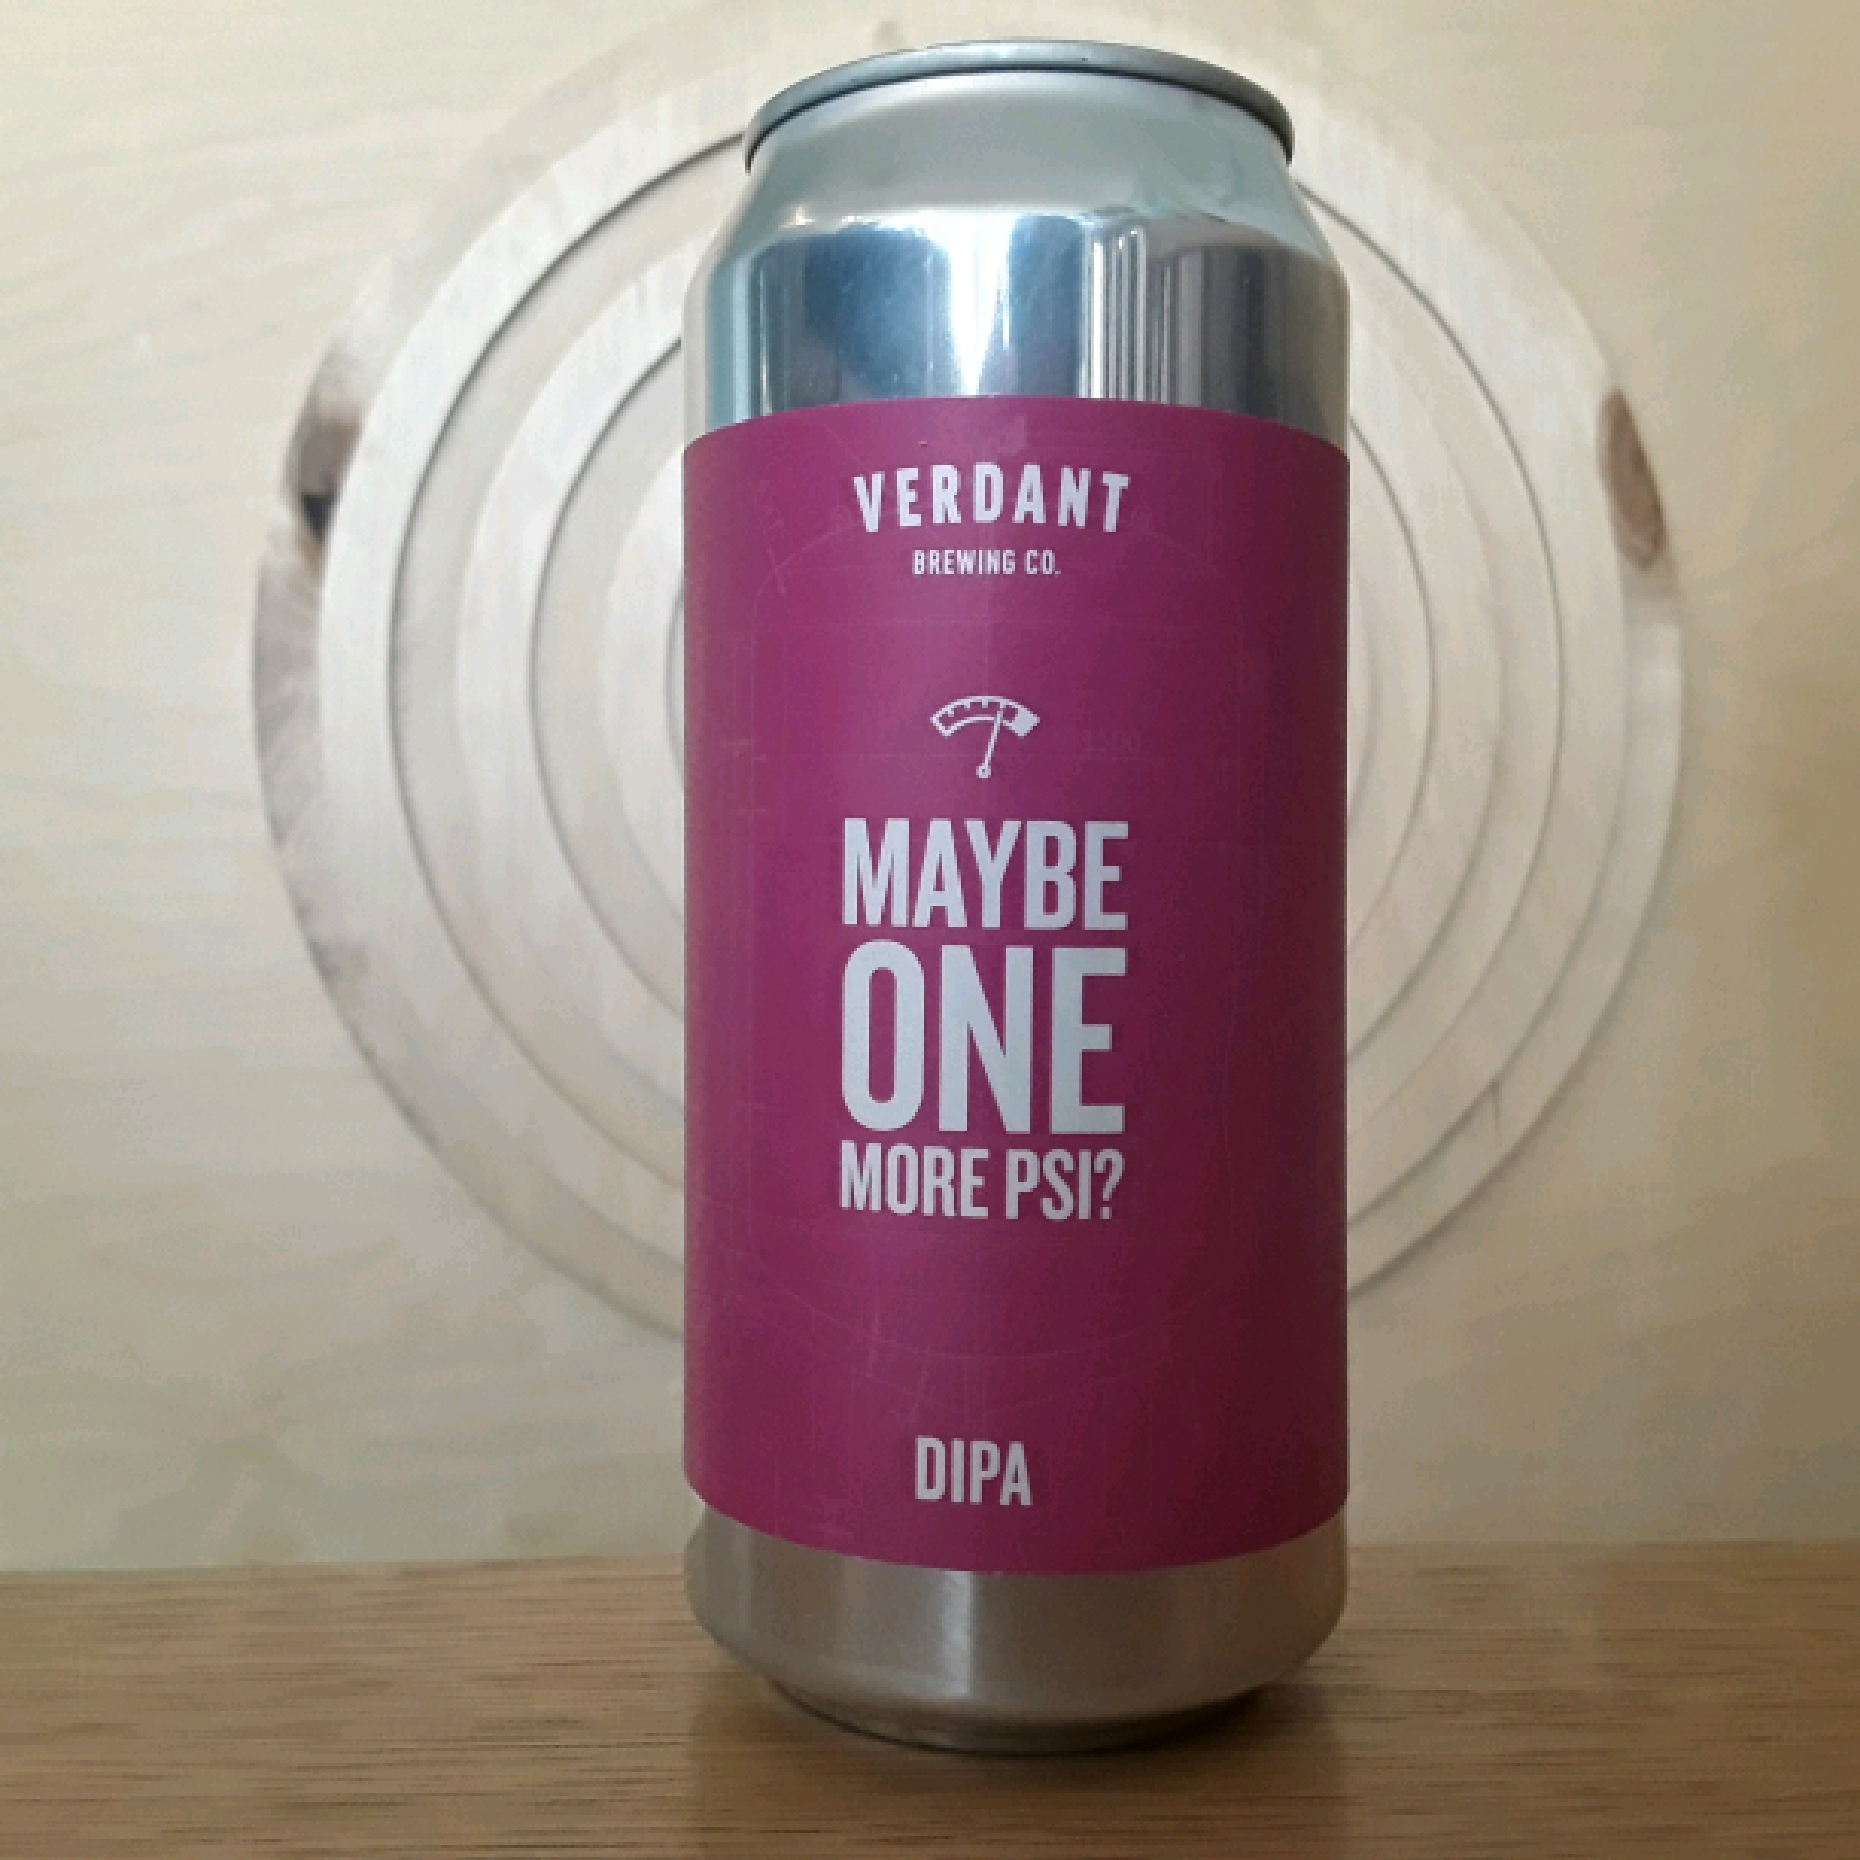 Verdant Maybe One More PSI DIPA